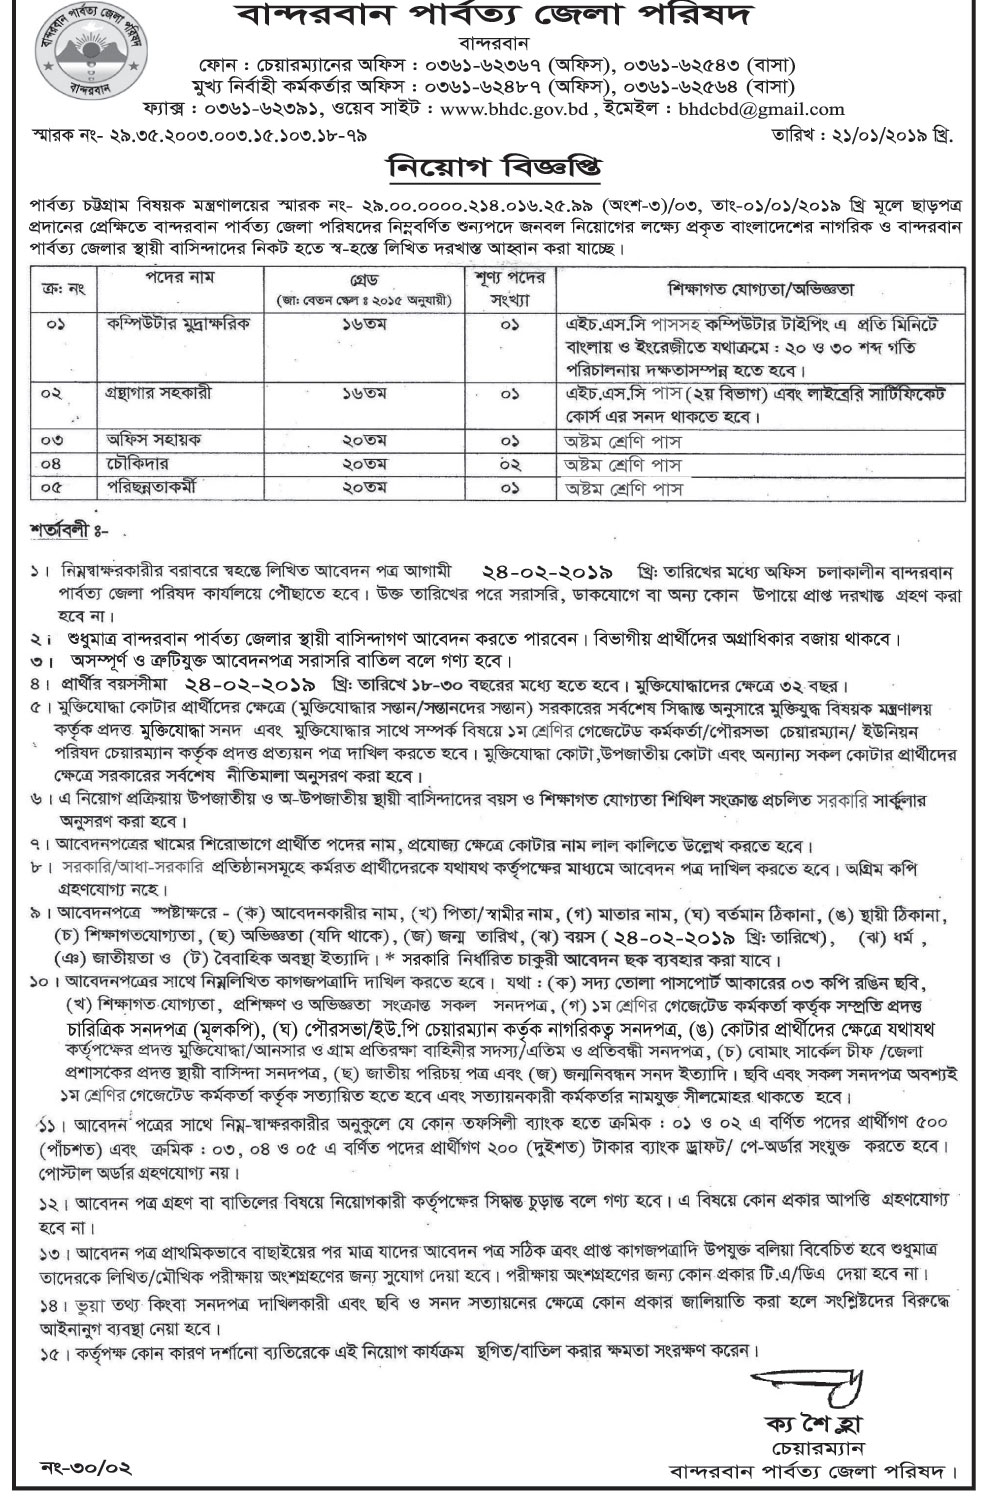 Bandarban Hill District Council Job Circular 2019